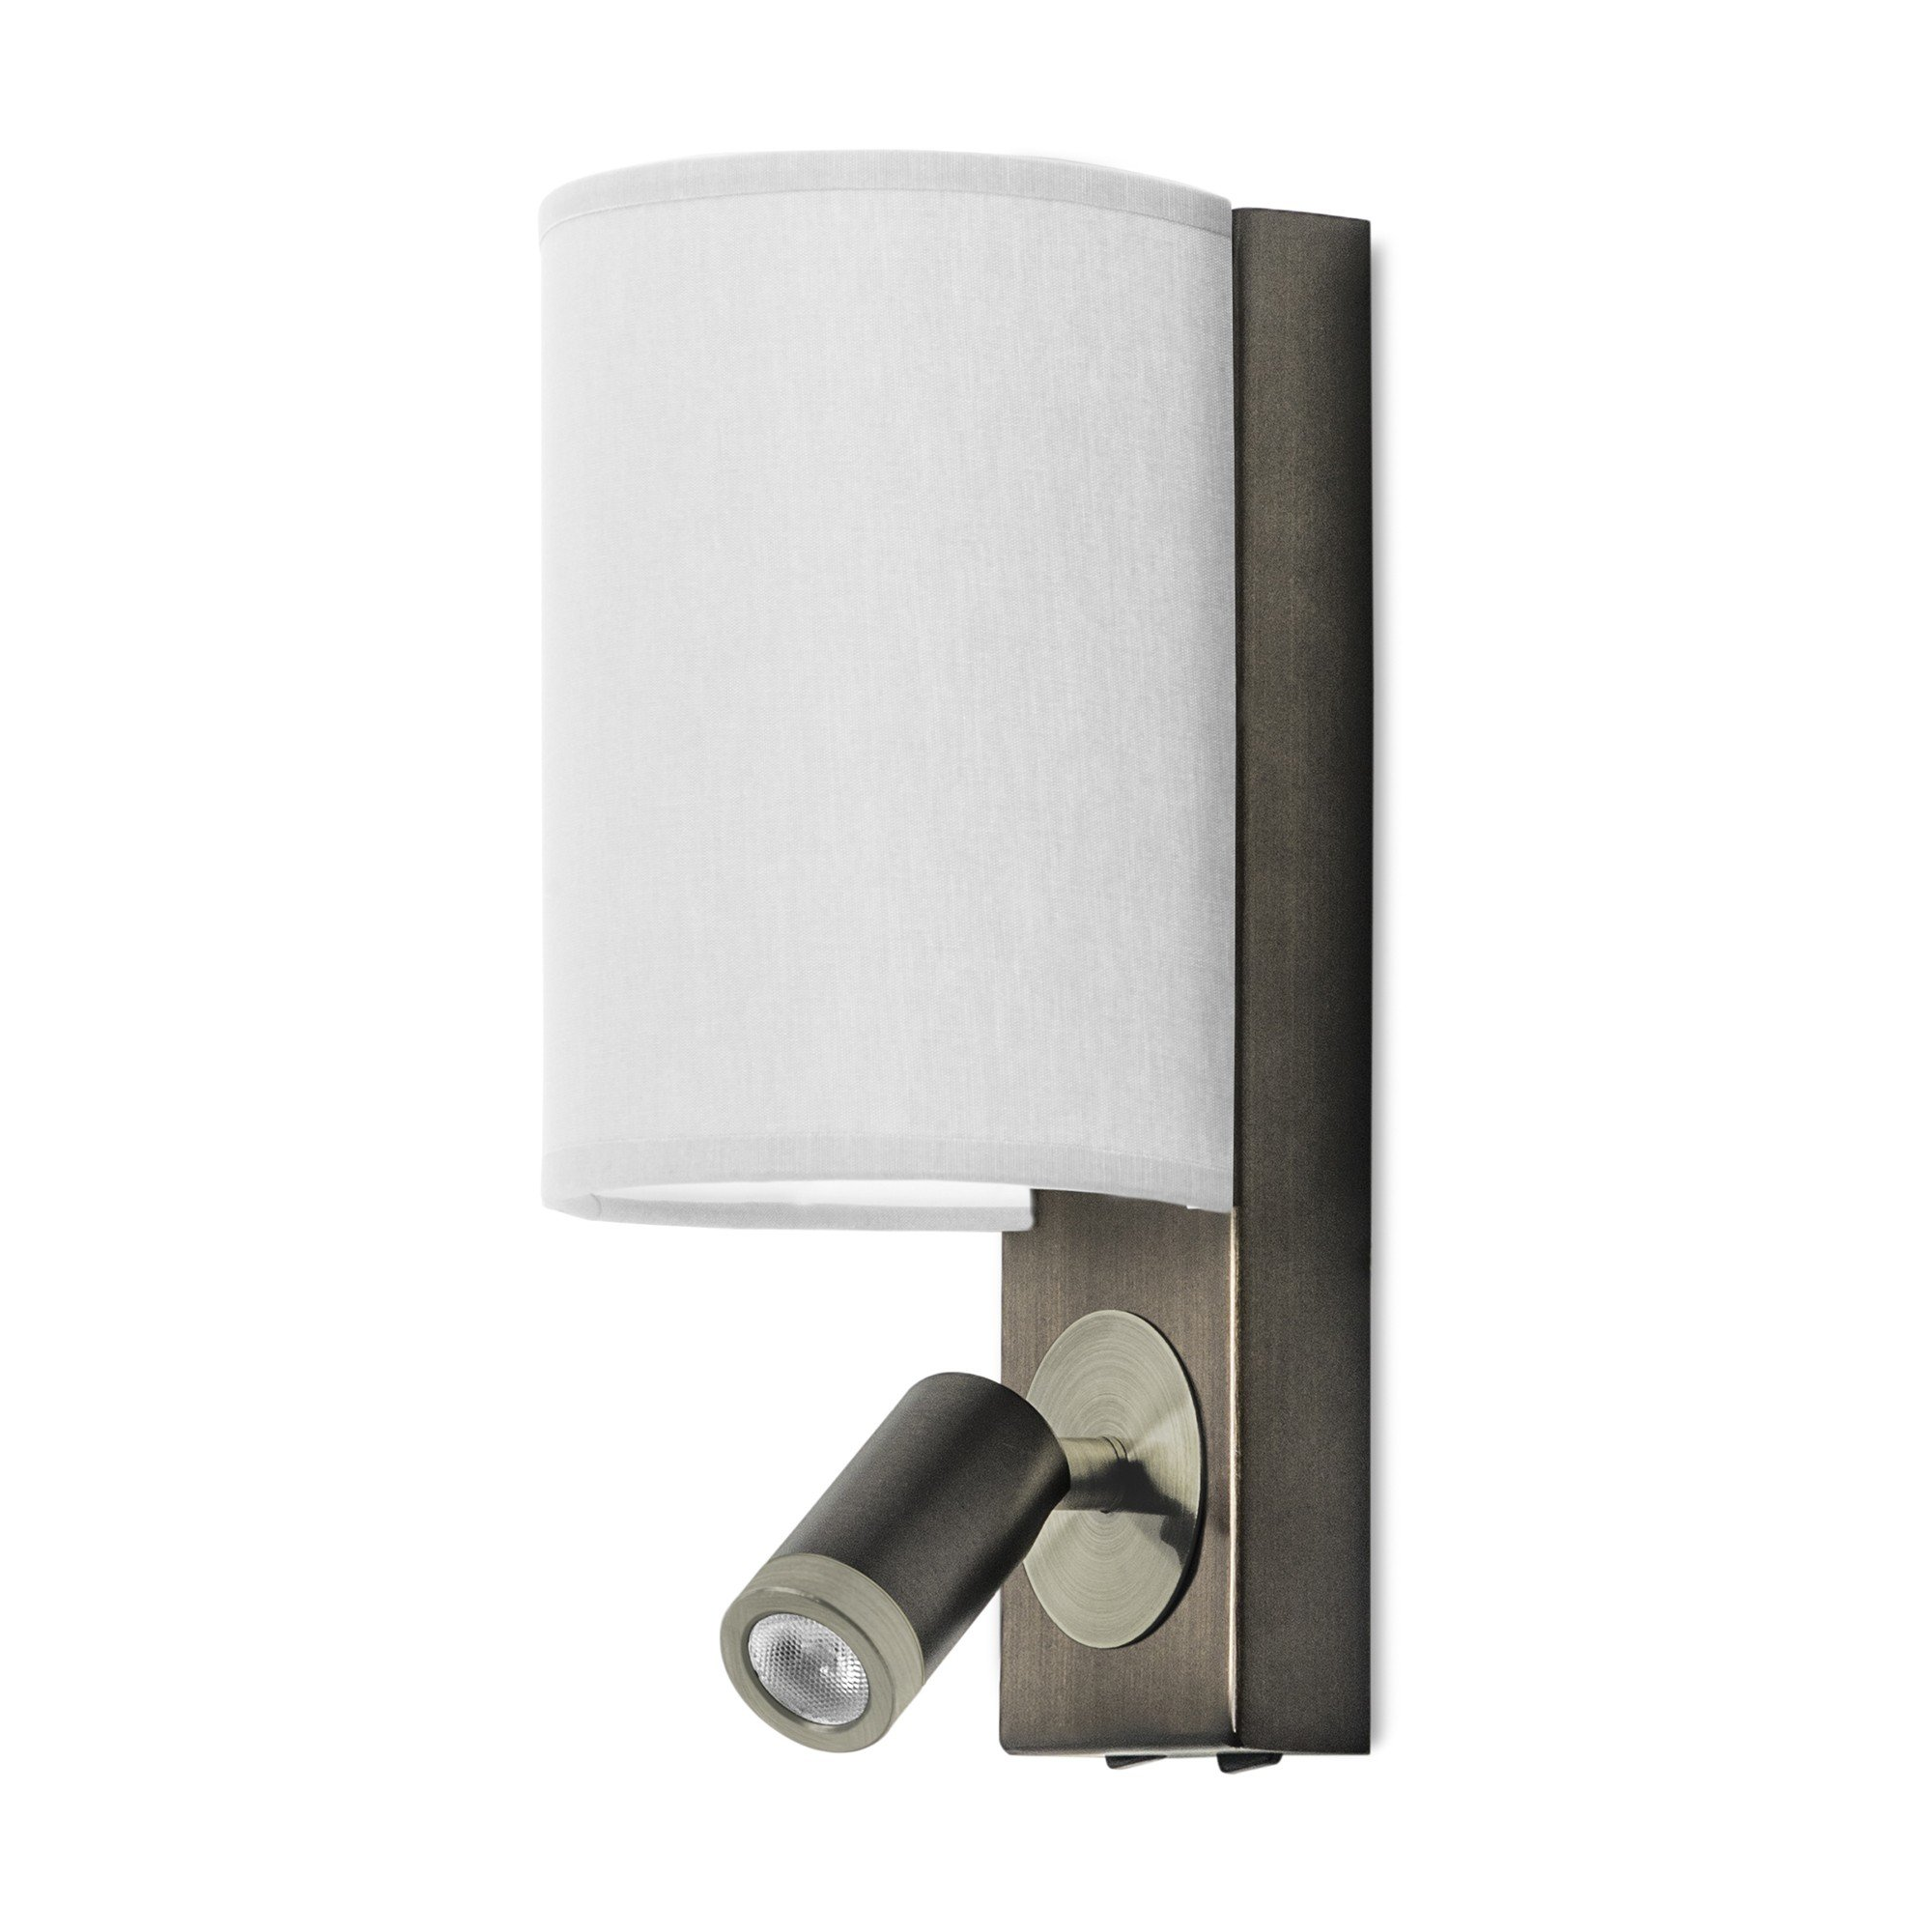 Lamparas Leds C4 Leds C4 Buc Aplique De Pared Aluminio Con Lector Led